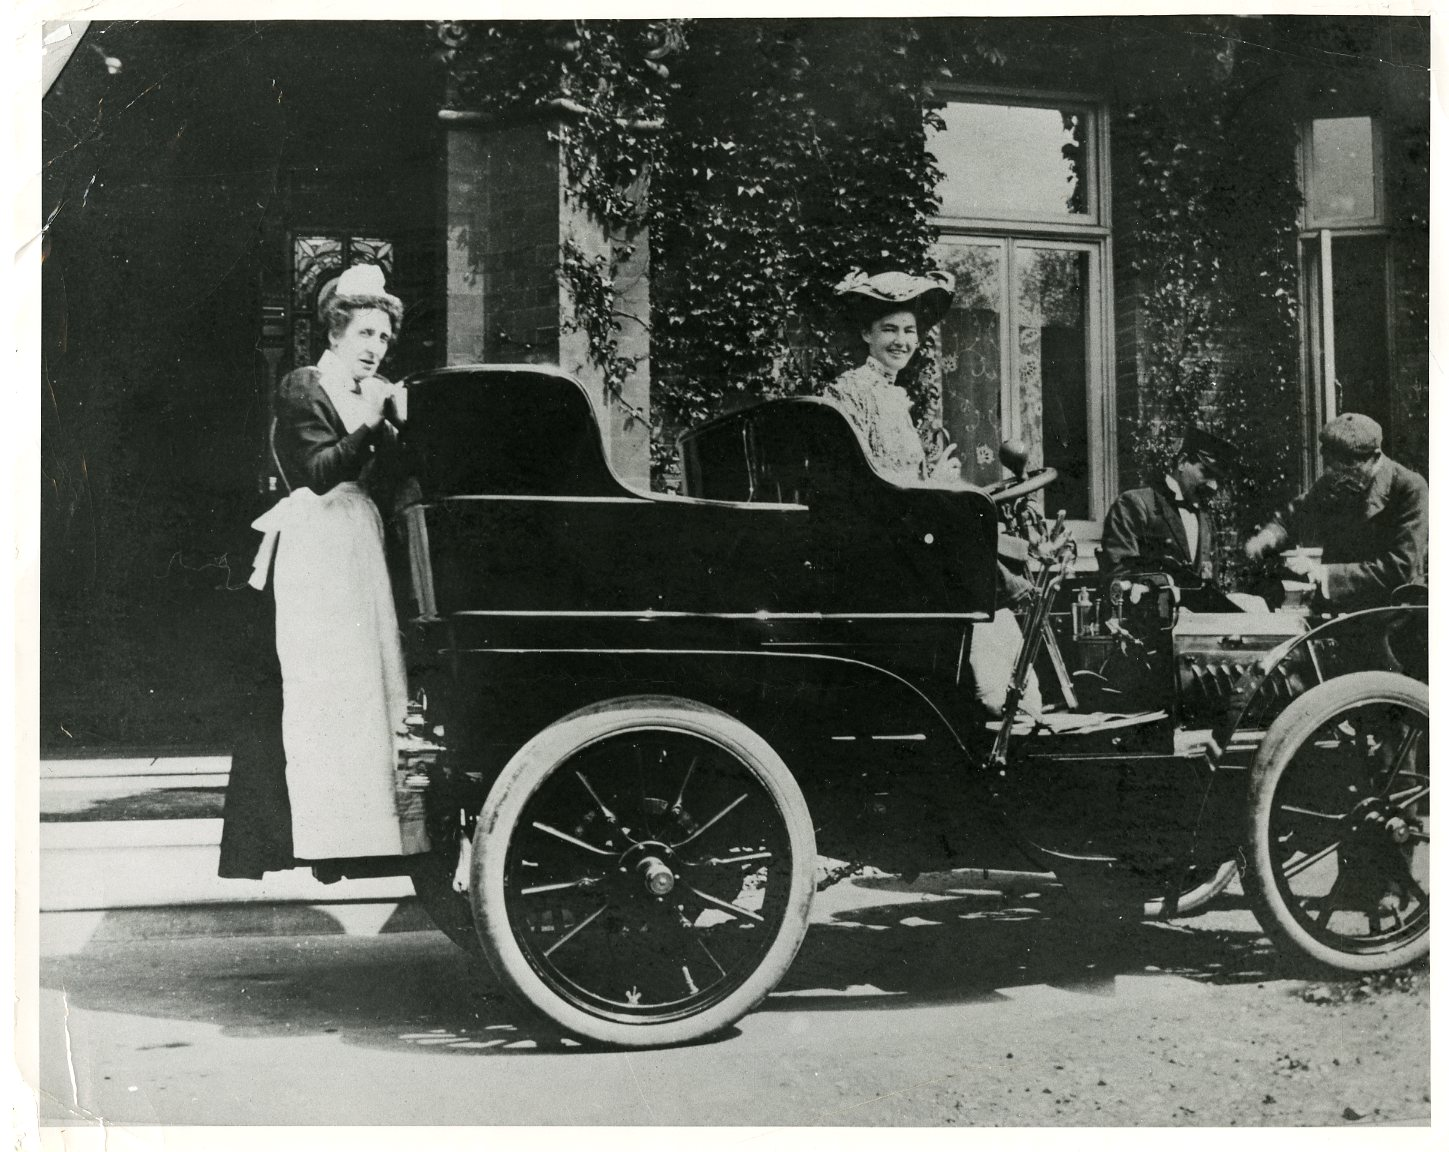 London, the first Hoover automobile, Mrs. Hoover behind the wheel and Mr. Hoover checking the engine. 1903